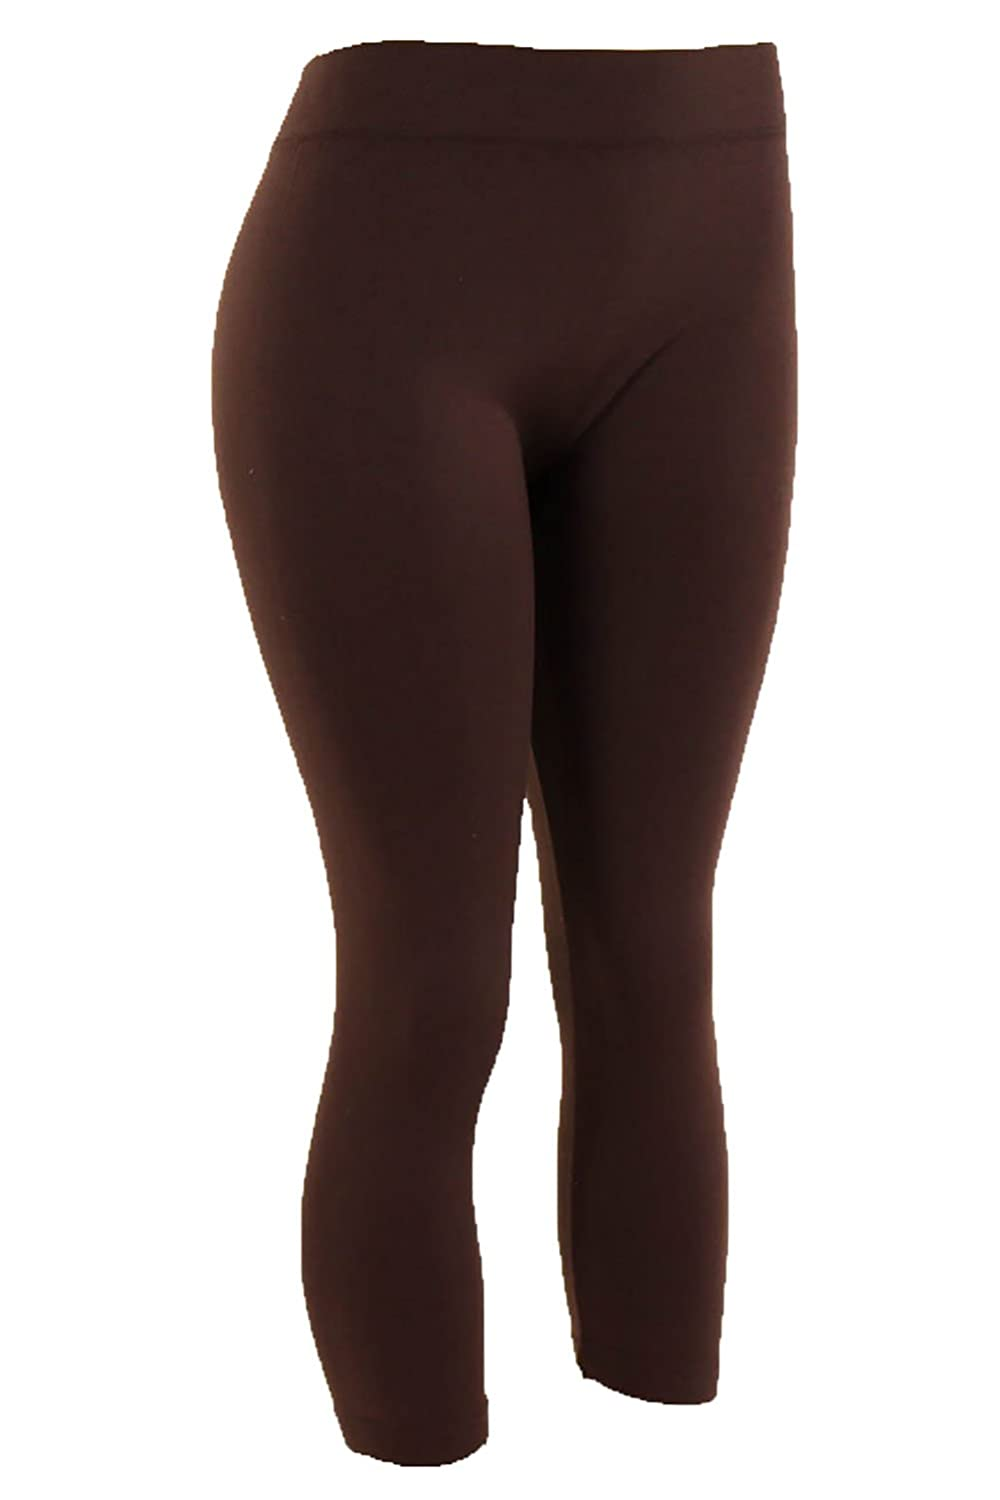 1552a4fe09 Sofra Women s Plus Size Cropped Capri Solid Leggings-Black at Amazon Women s  Clothing store